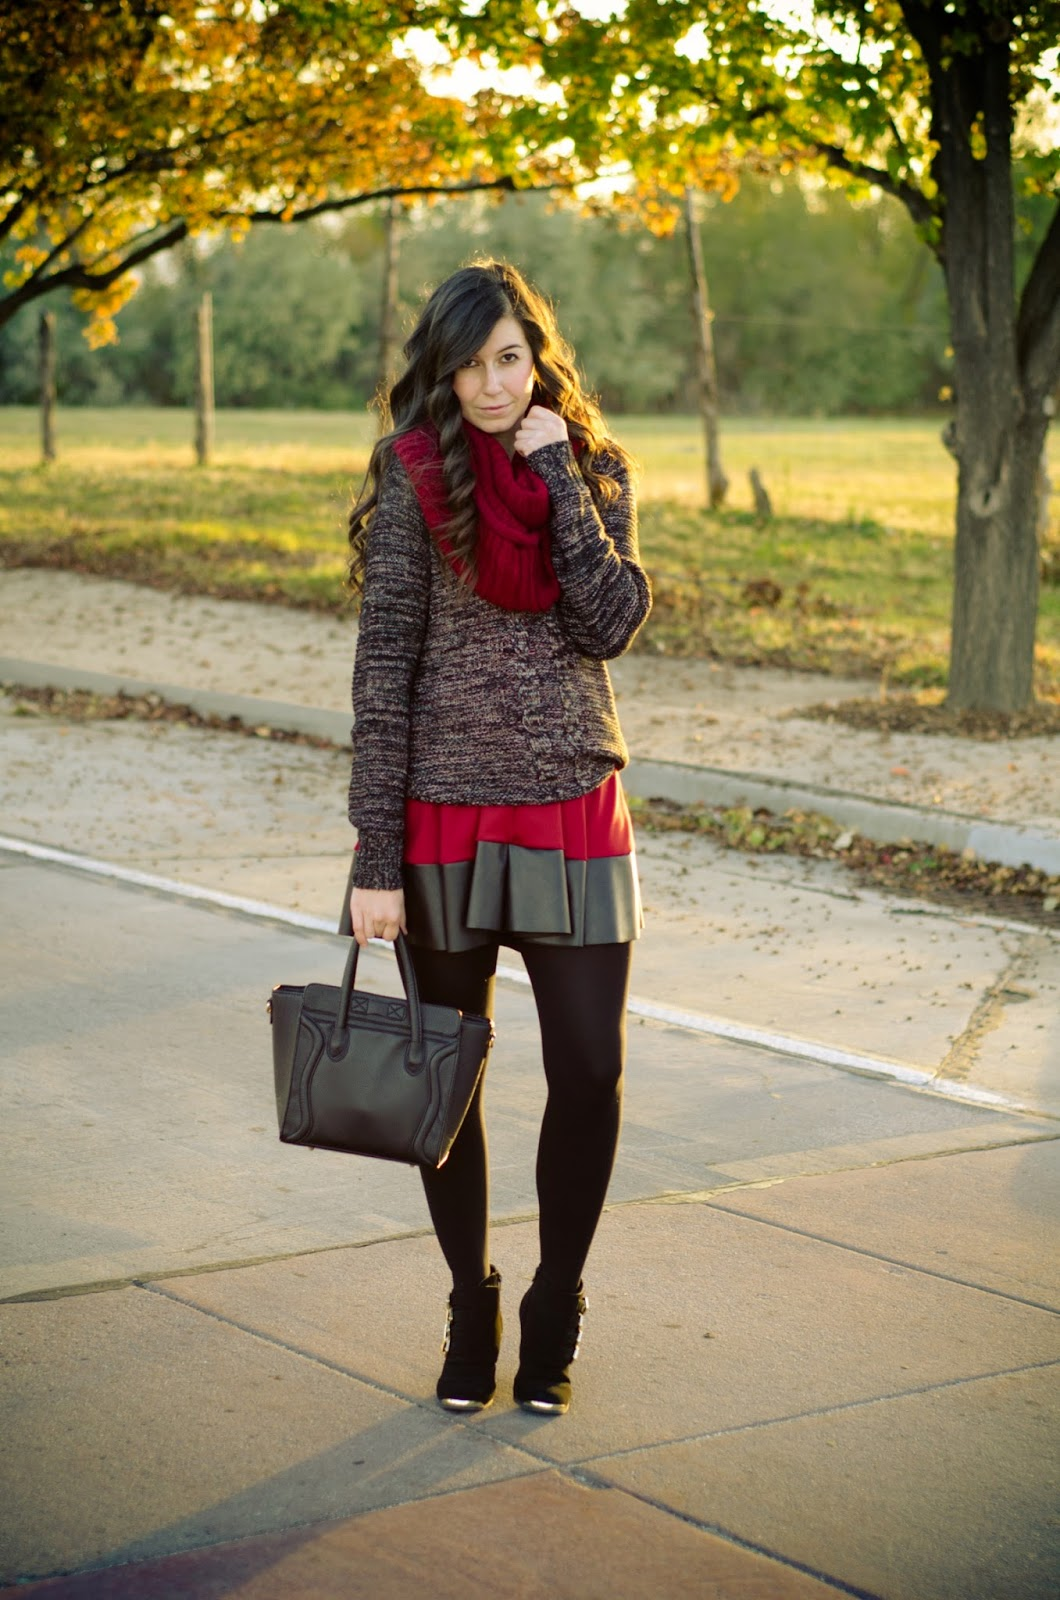 layered outfit for fall and winter, vanity fashion, vanity clothing, chunky sweater outfit, burgundy dress layered, photography, transition outfit into winter, fall outfit,